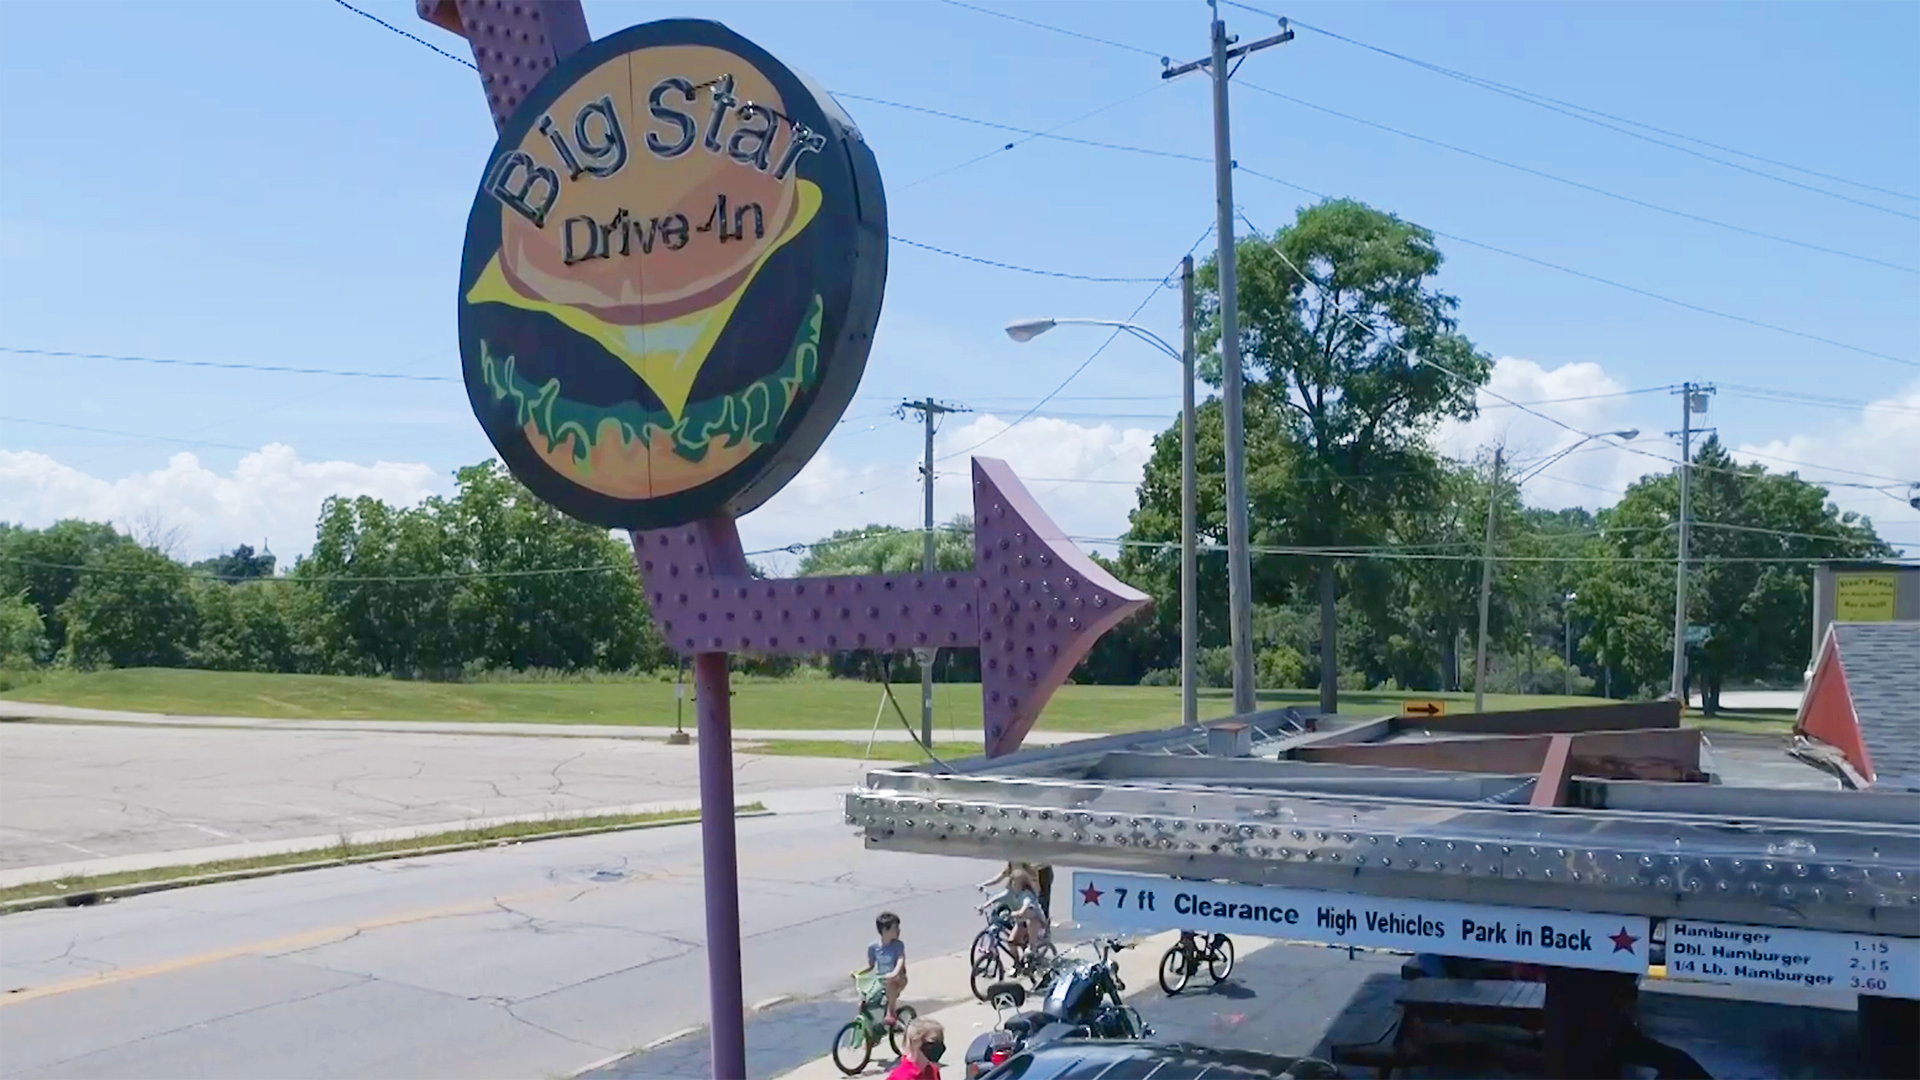 Wisconsin Foodie - Kenosha Drive-ins and The Diplomat